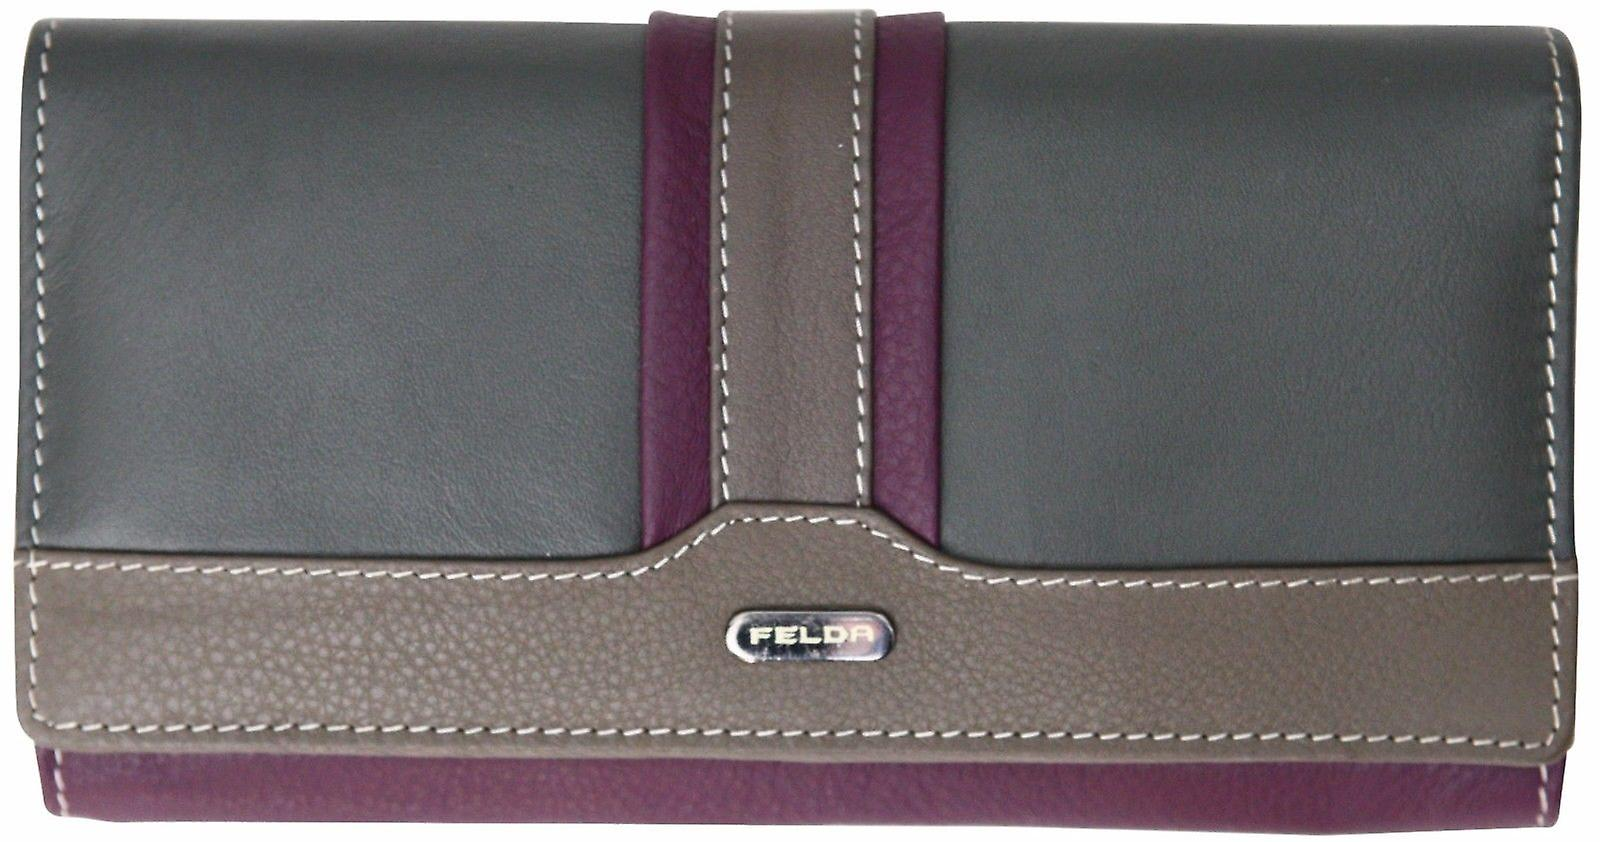 Felda RFID Ladies Purse Wallet Genuine Leather Multi Soft Credit Card Gift Box